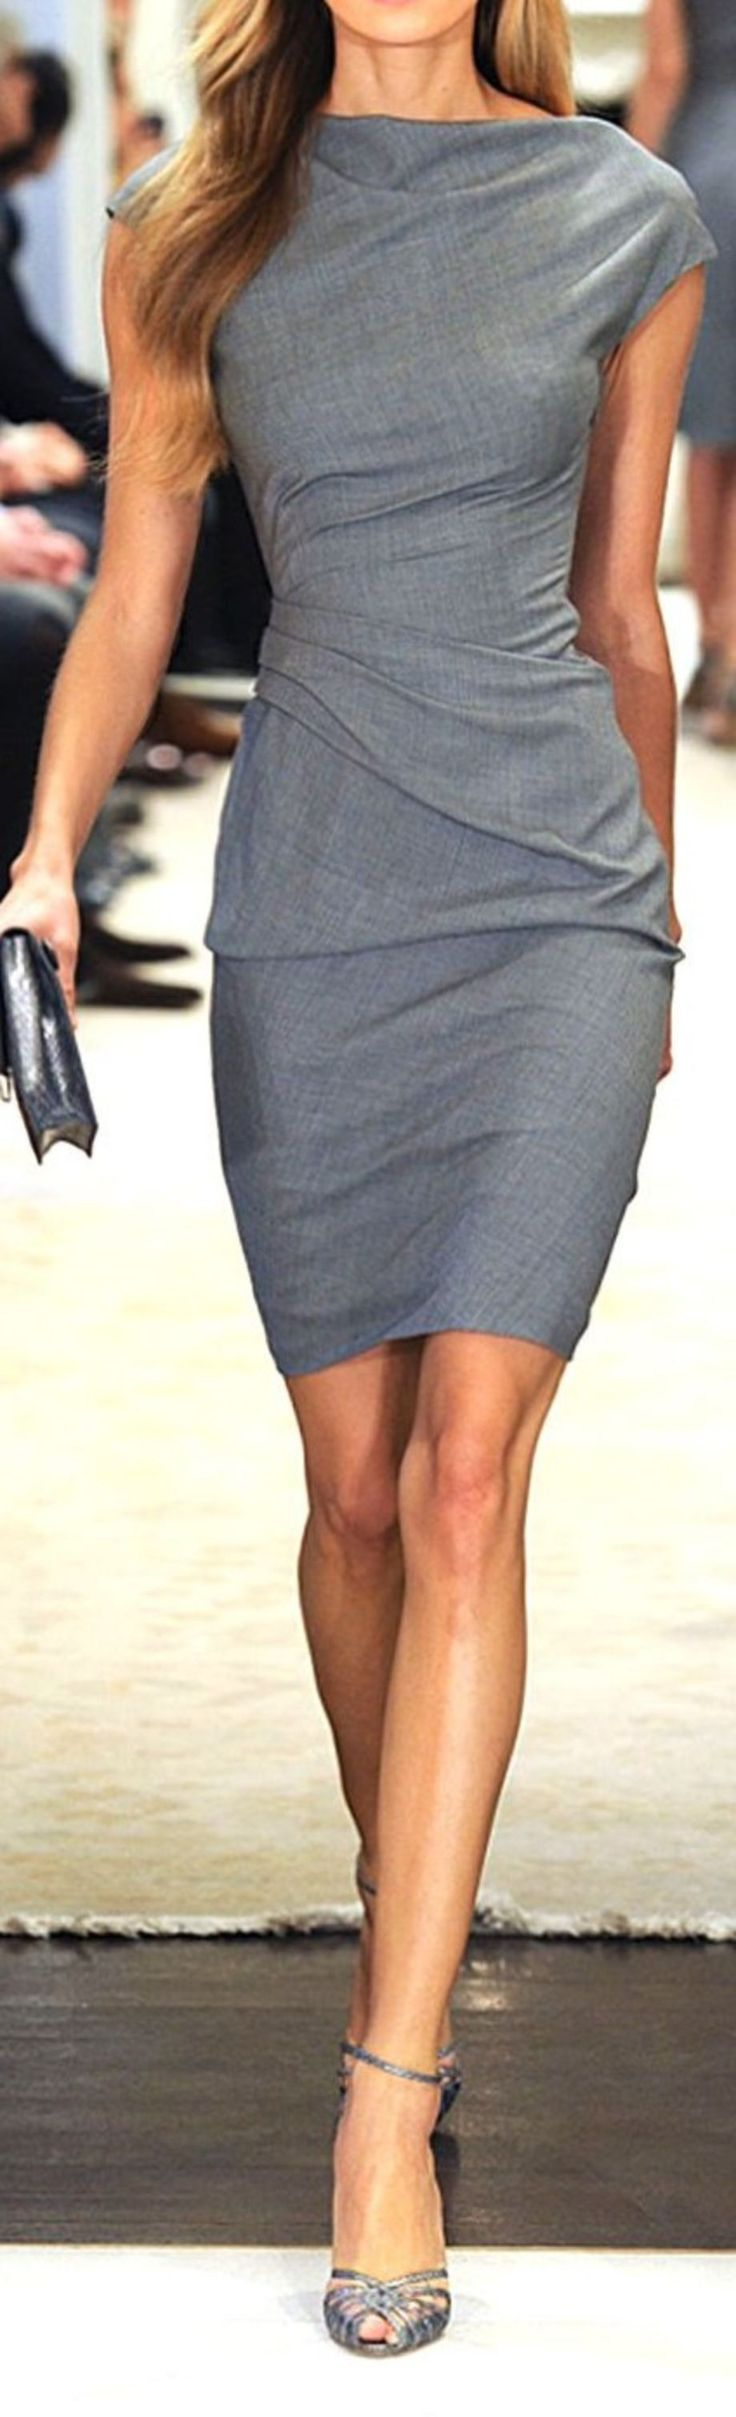 Magnificent ideas summer work outfits for women 39 - Fashionetter